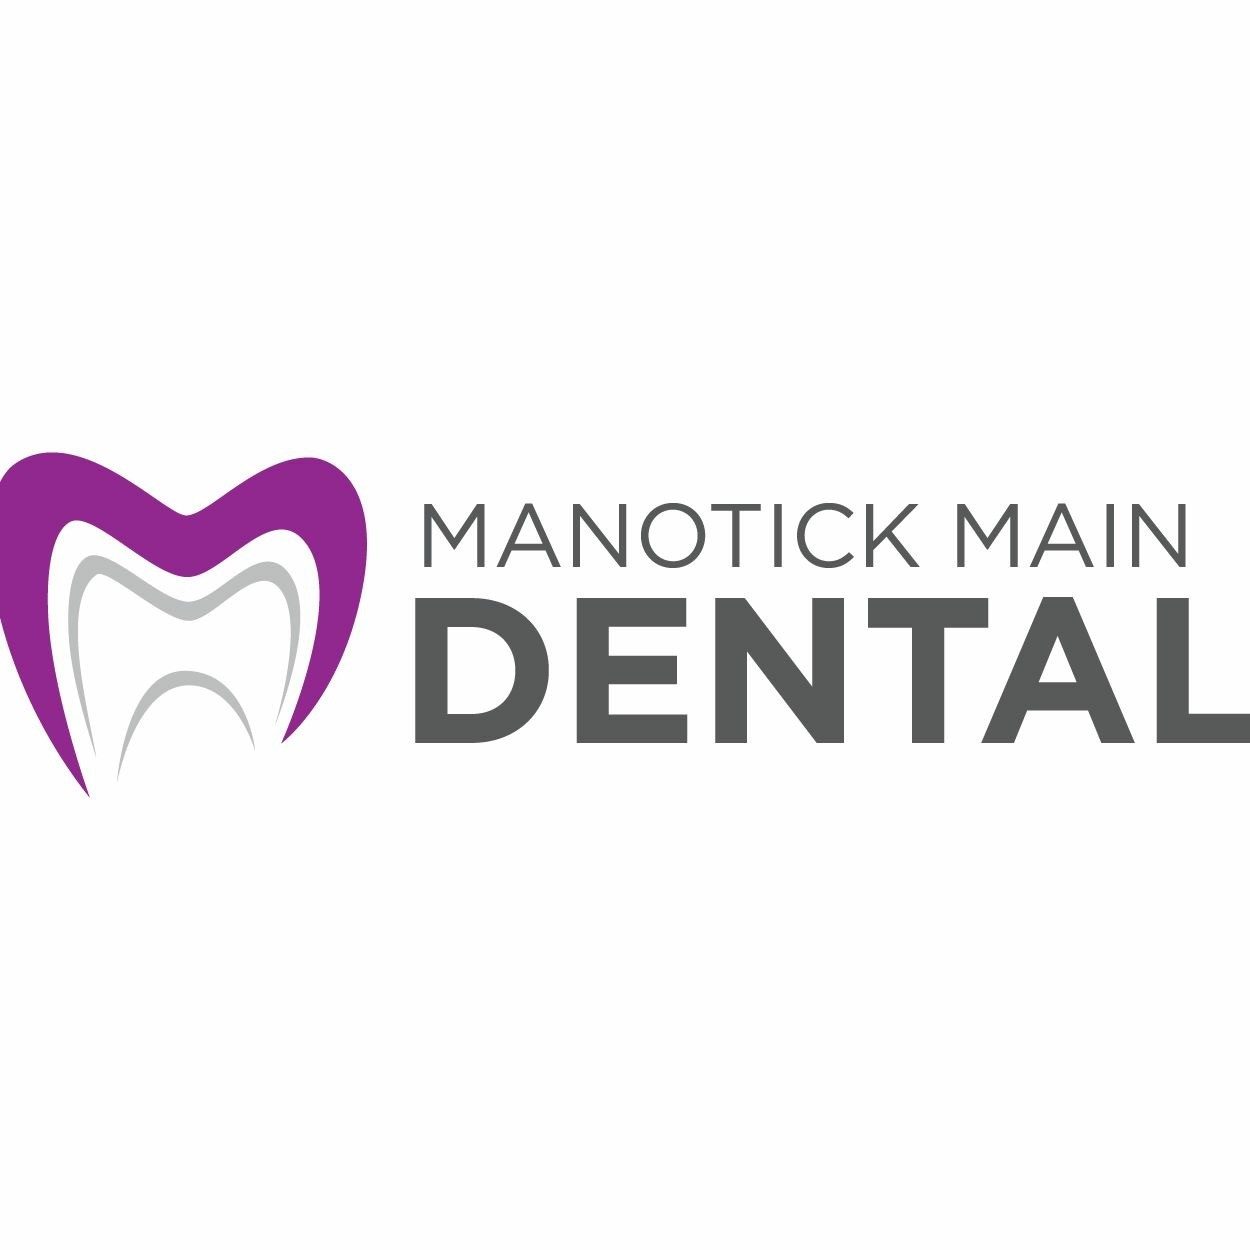 Manotick Main Dental logo - Business in Manotick